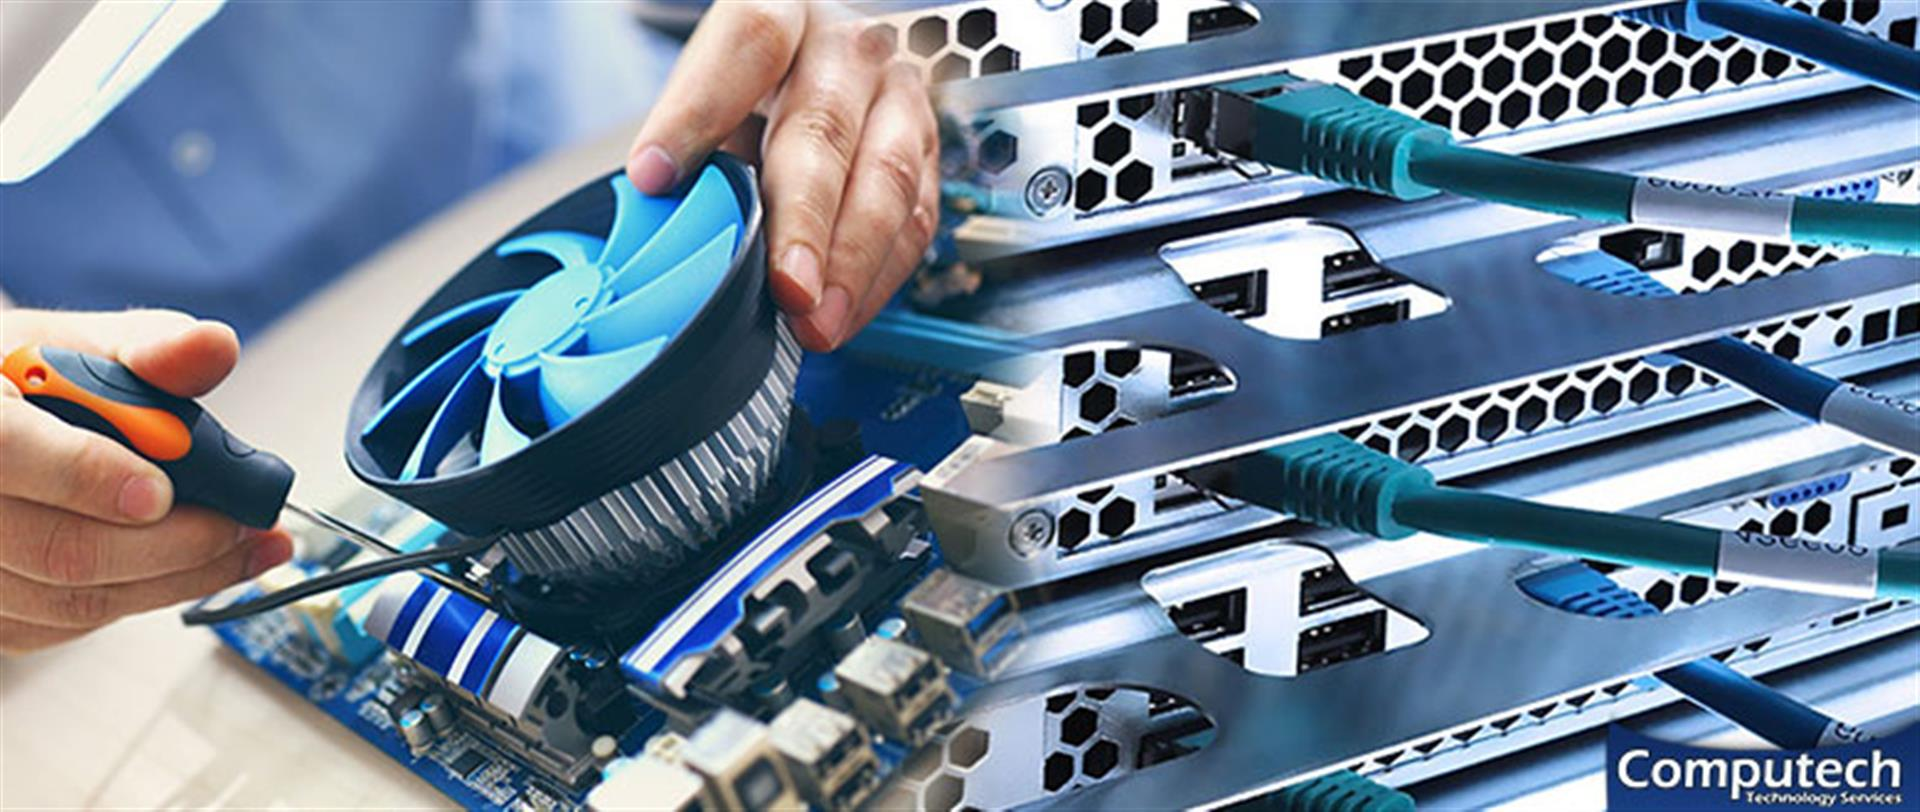 Lawrenceburg Tennessee Onsite PC and Printer Repairs, Networking, Voice & Data Cabling Services